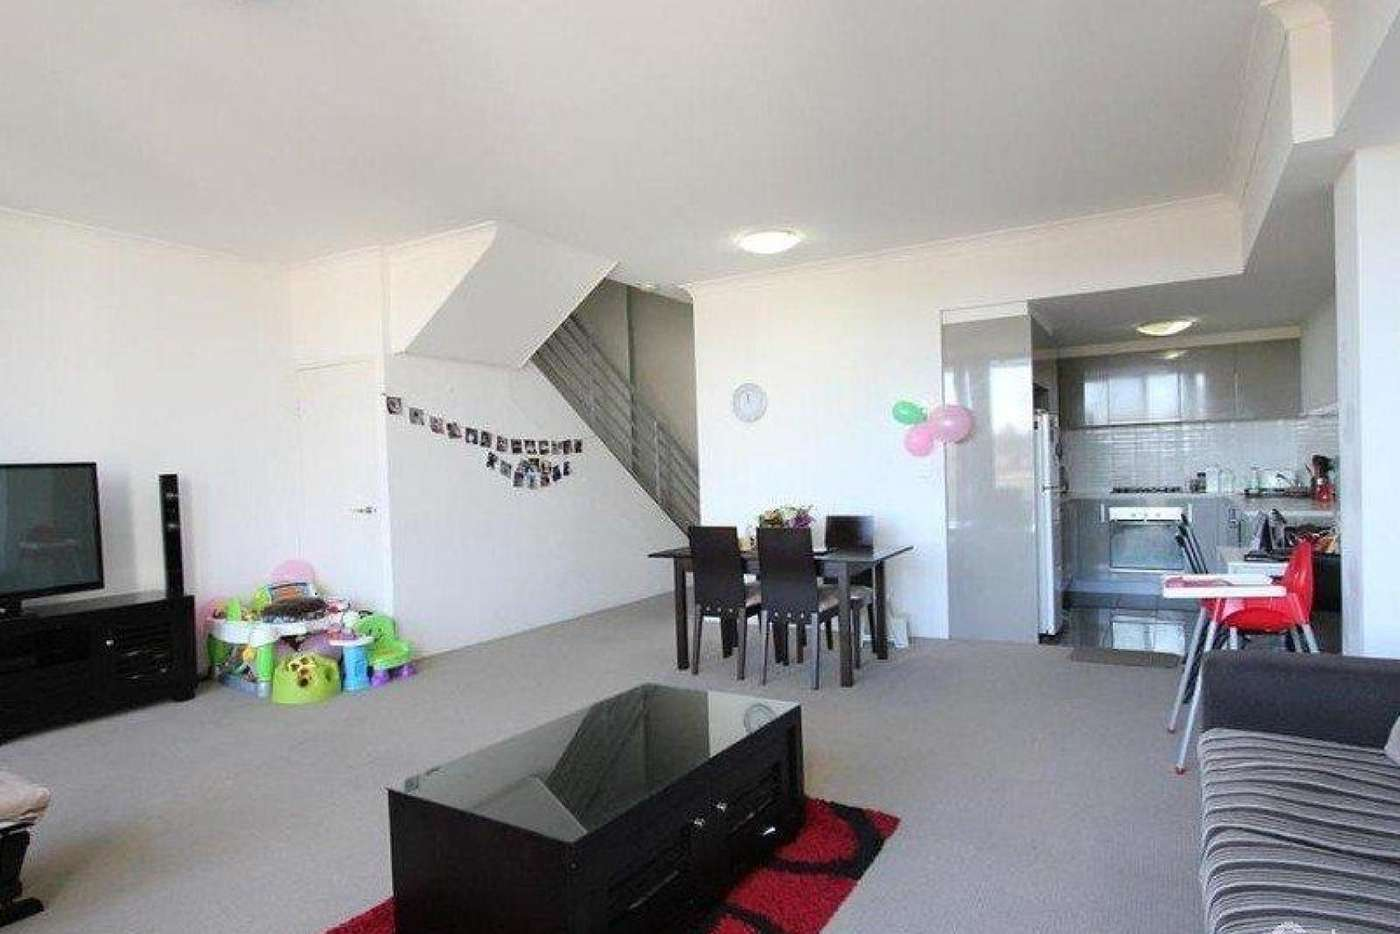 Main view of Homely apartment listing, 61/10-16 Castlereagh Street, Liverpool NSW 2170